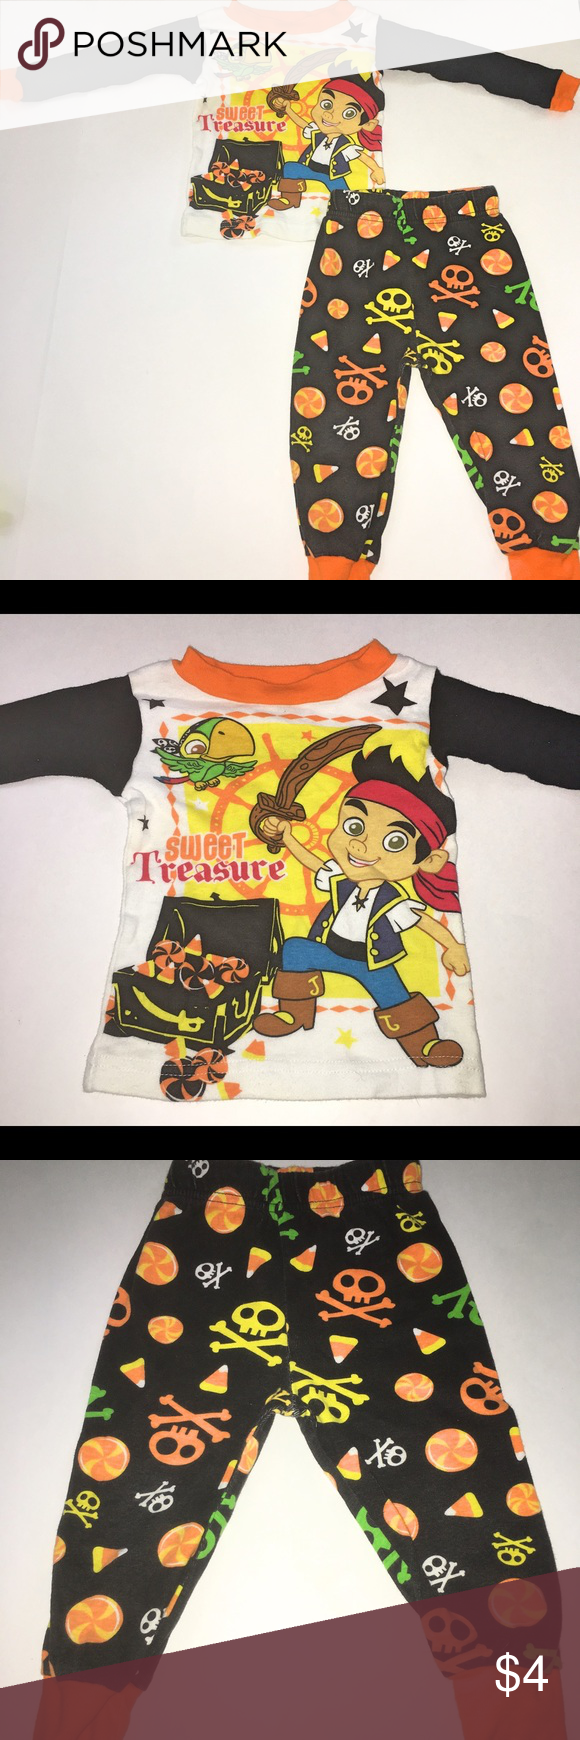 disney jake and the neverland pirates pajamas gently used halloween pjs with long sleeved shirt and pants to match these pjs show normal wear but have no